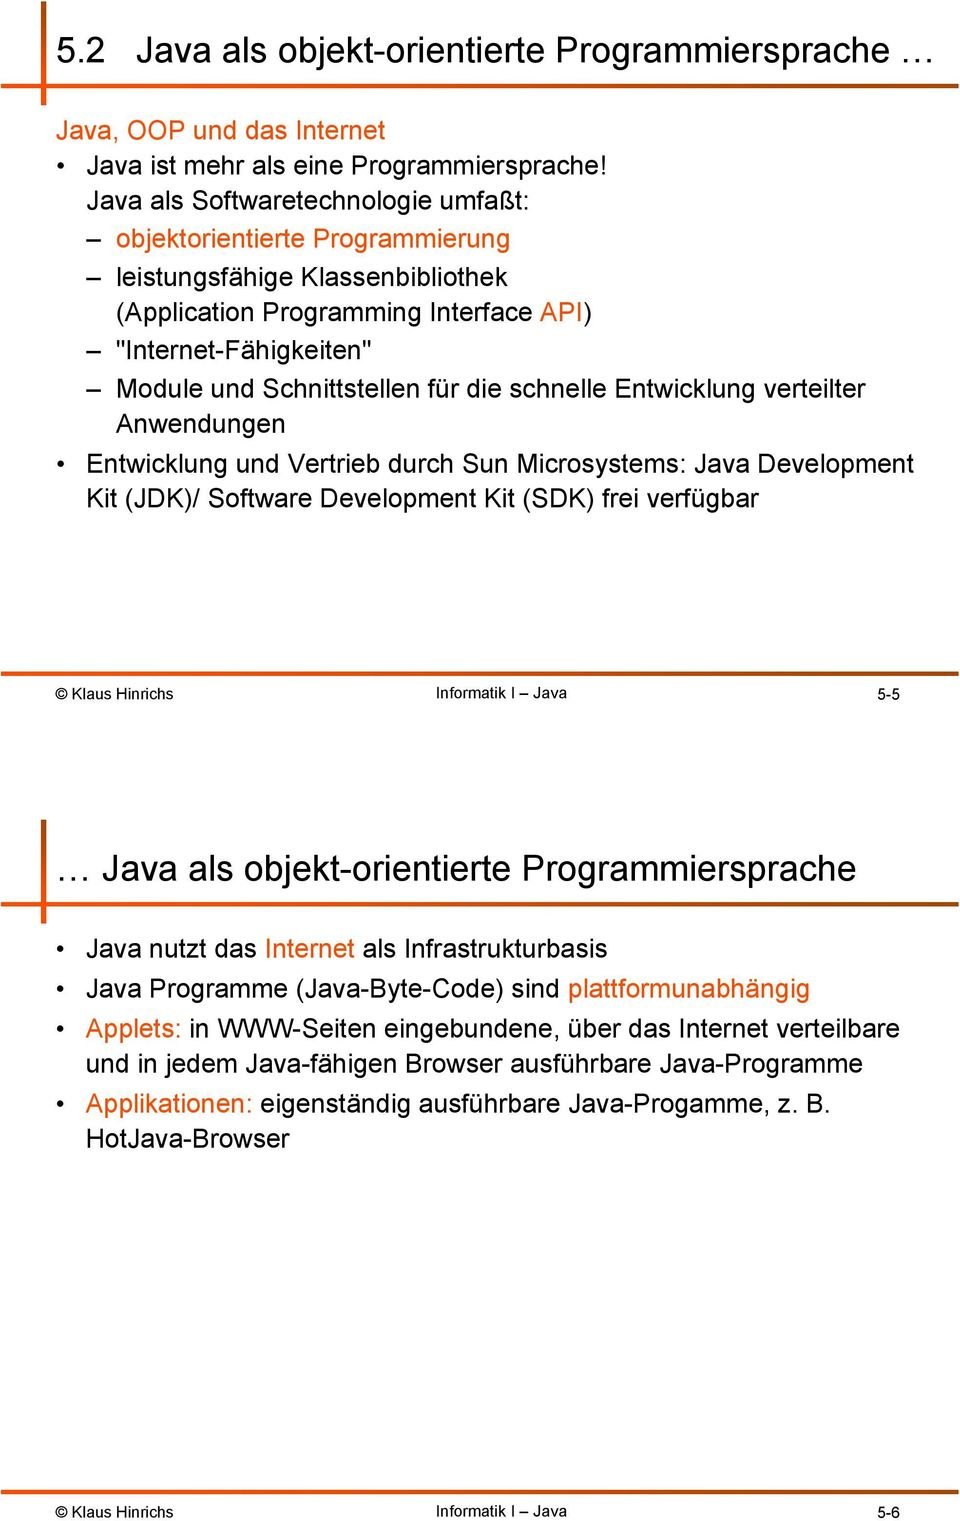 die schnelle Entwicklung verteilter Anwendungen Entwicklung und Vertrieb durch Sun Microsystems: Java Development Kit (JDK)/ Software Development Kit (SDK) frei verfügbar 5-5 Java als